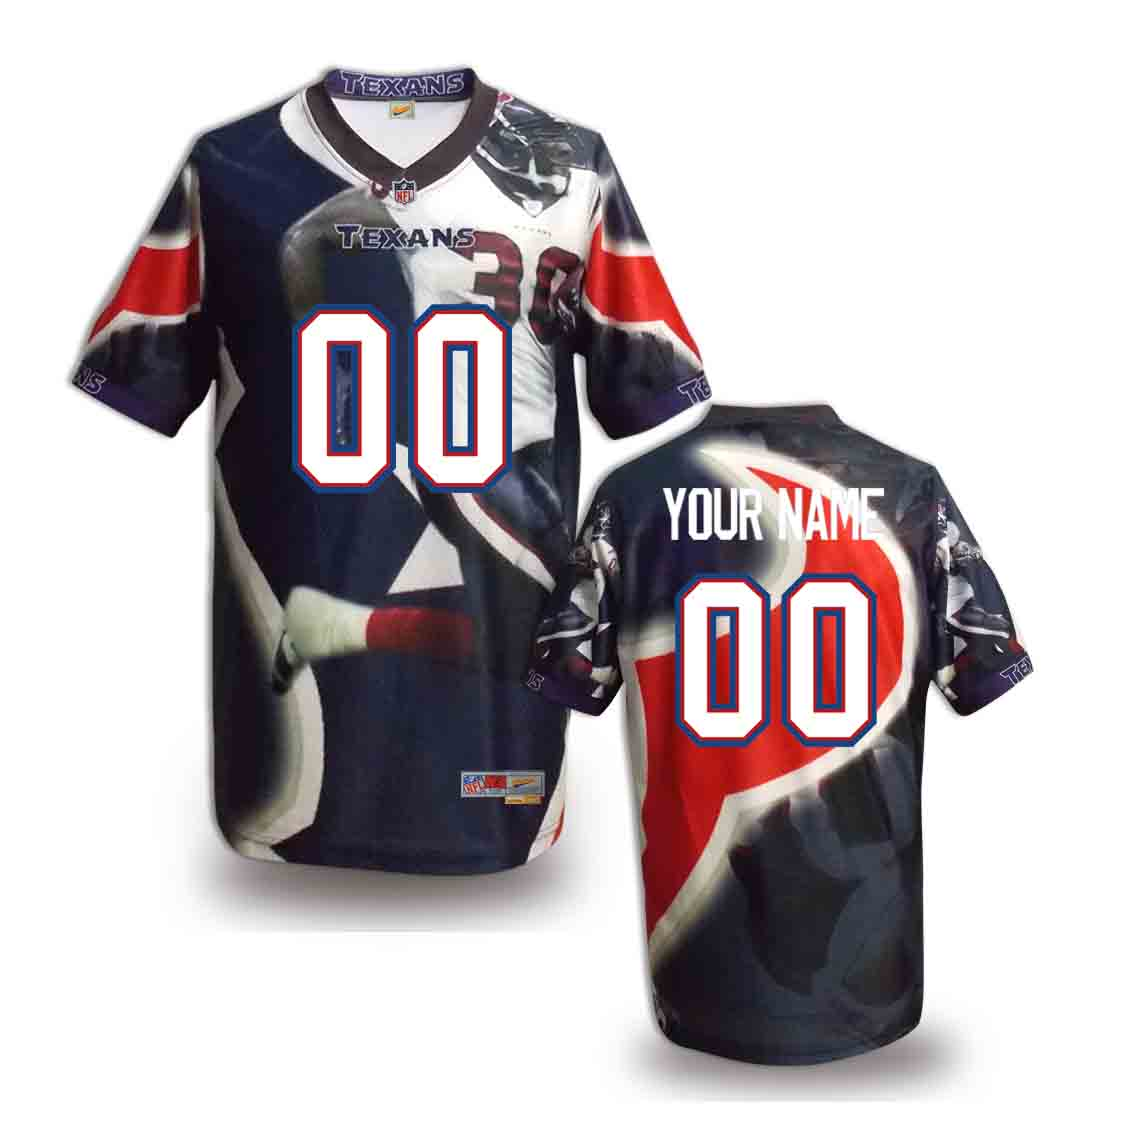 Nike Texans Customized Fashion Stitched Jerseys04